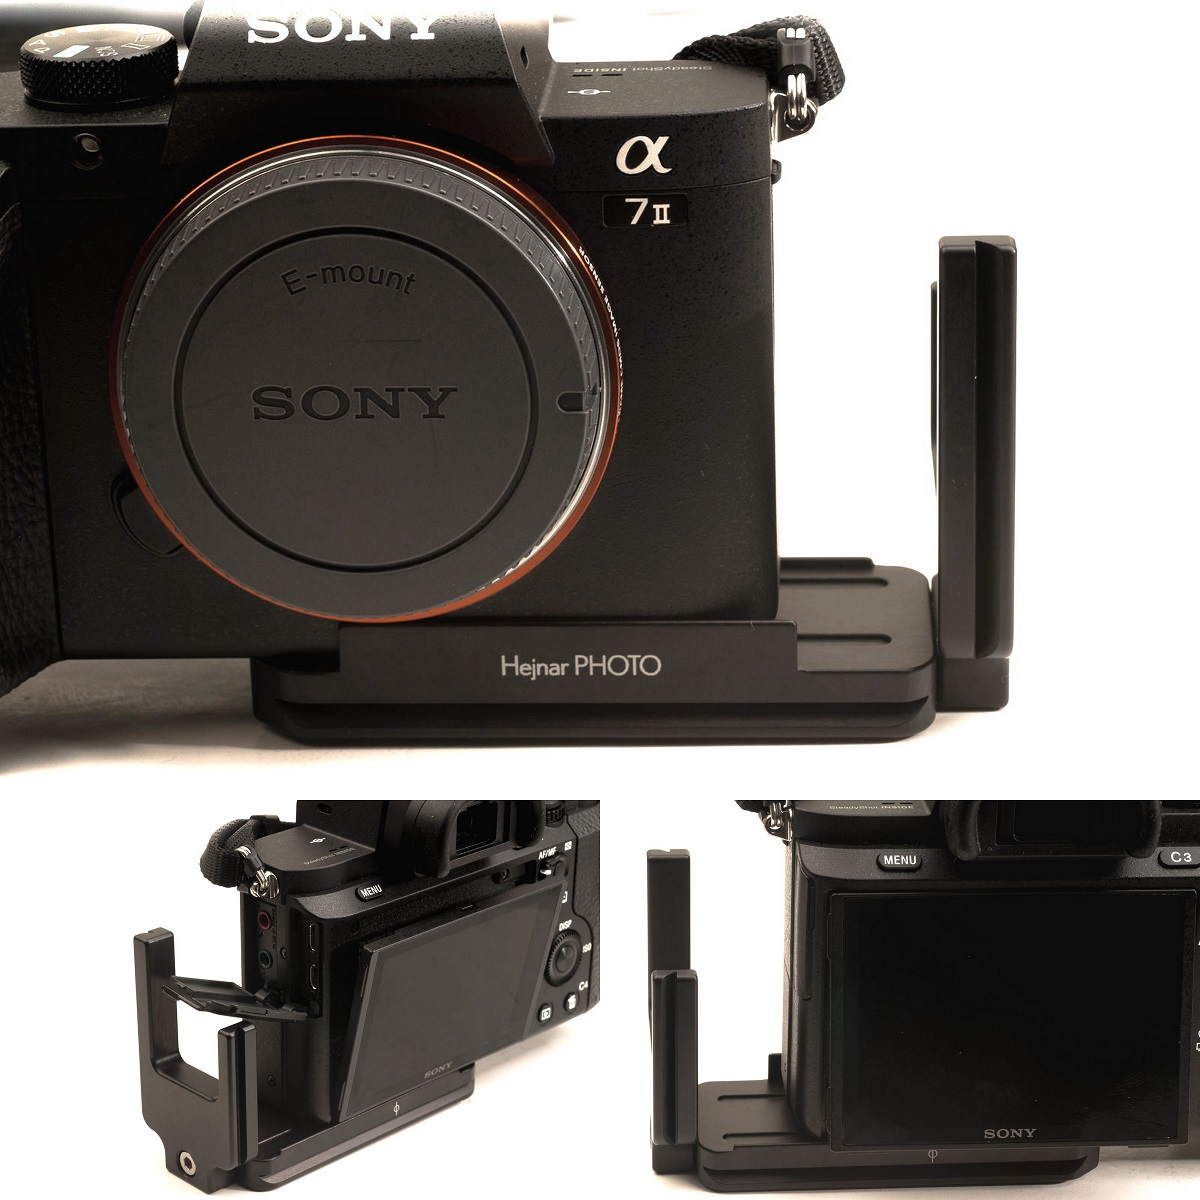 Hejnar PHOTO S-A-7II L Bracket on SONY a7II - shifted away from side